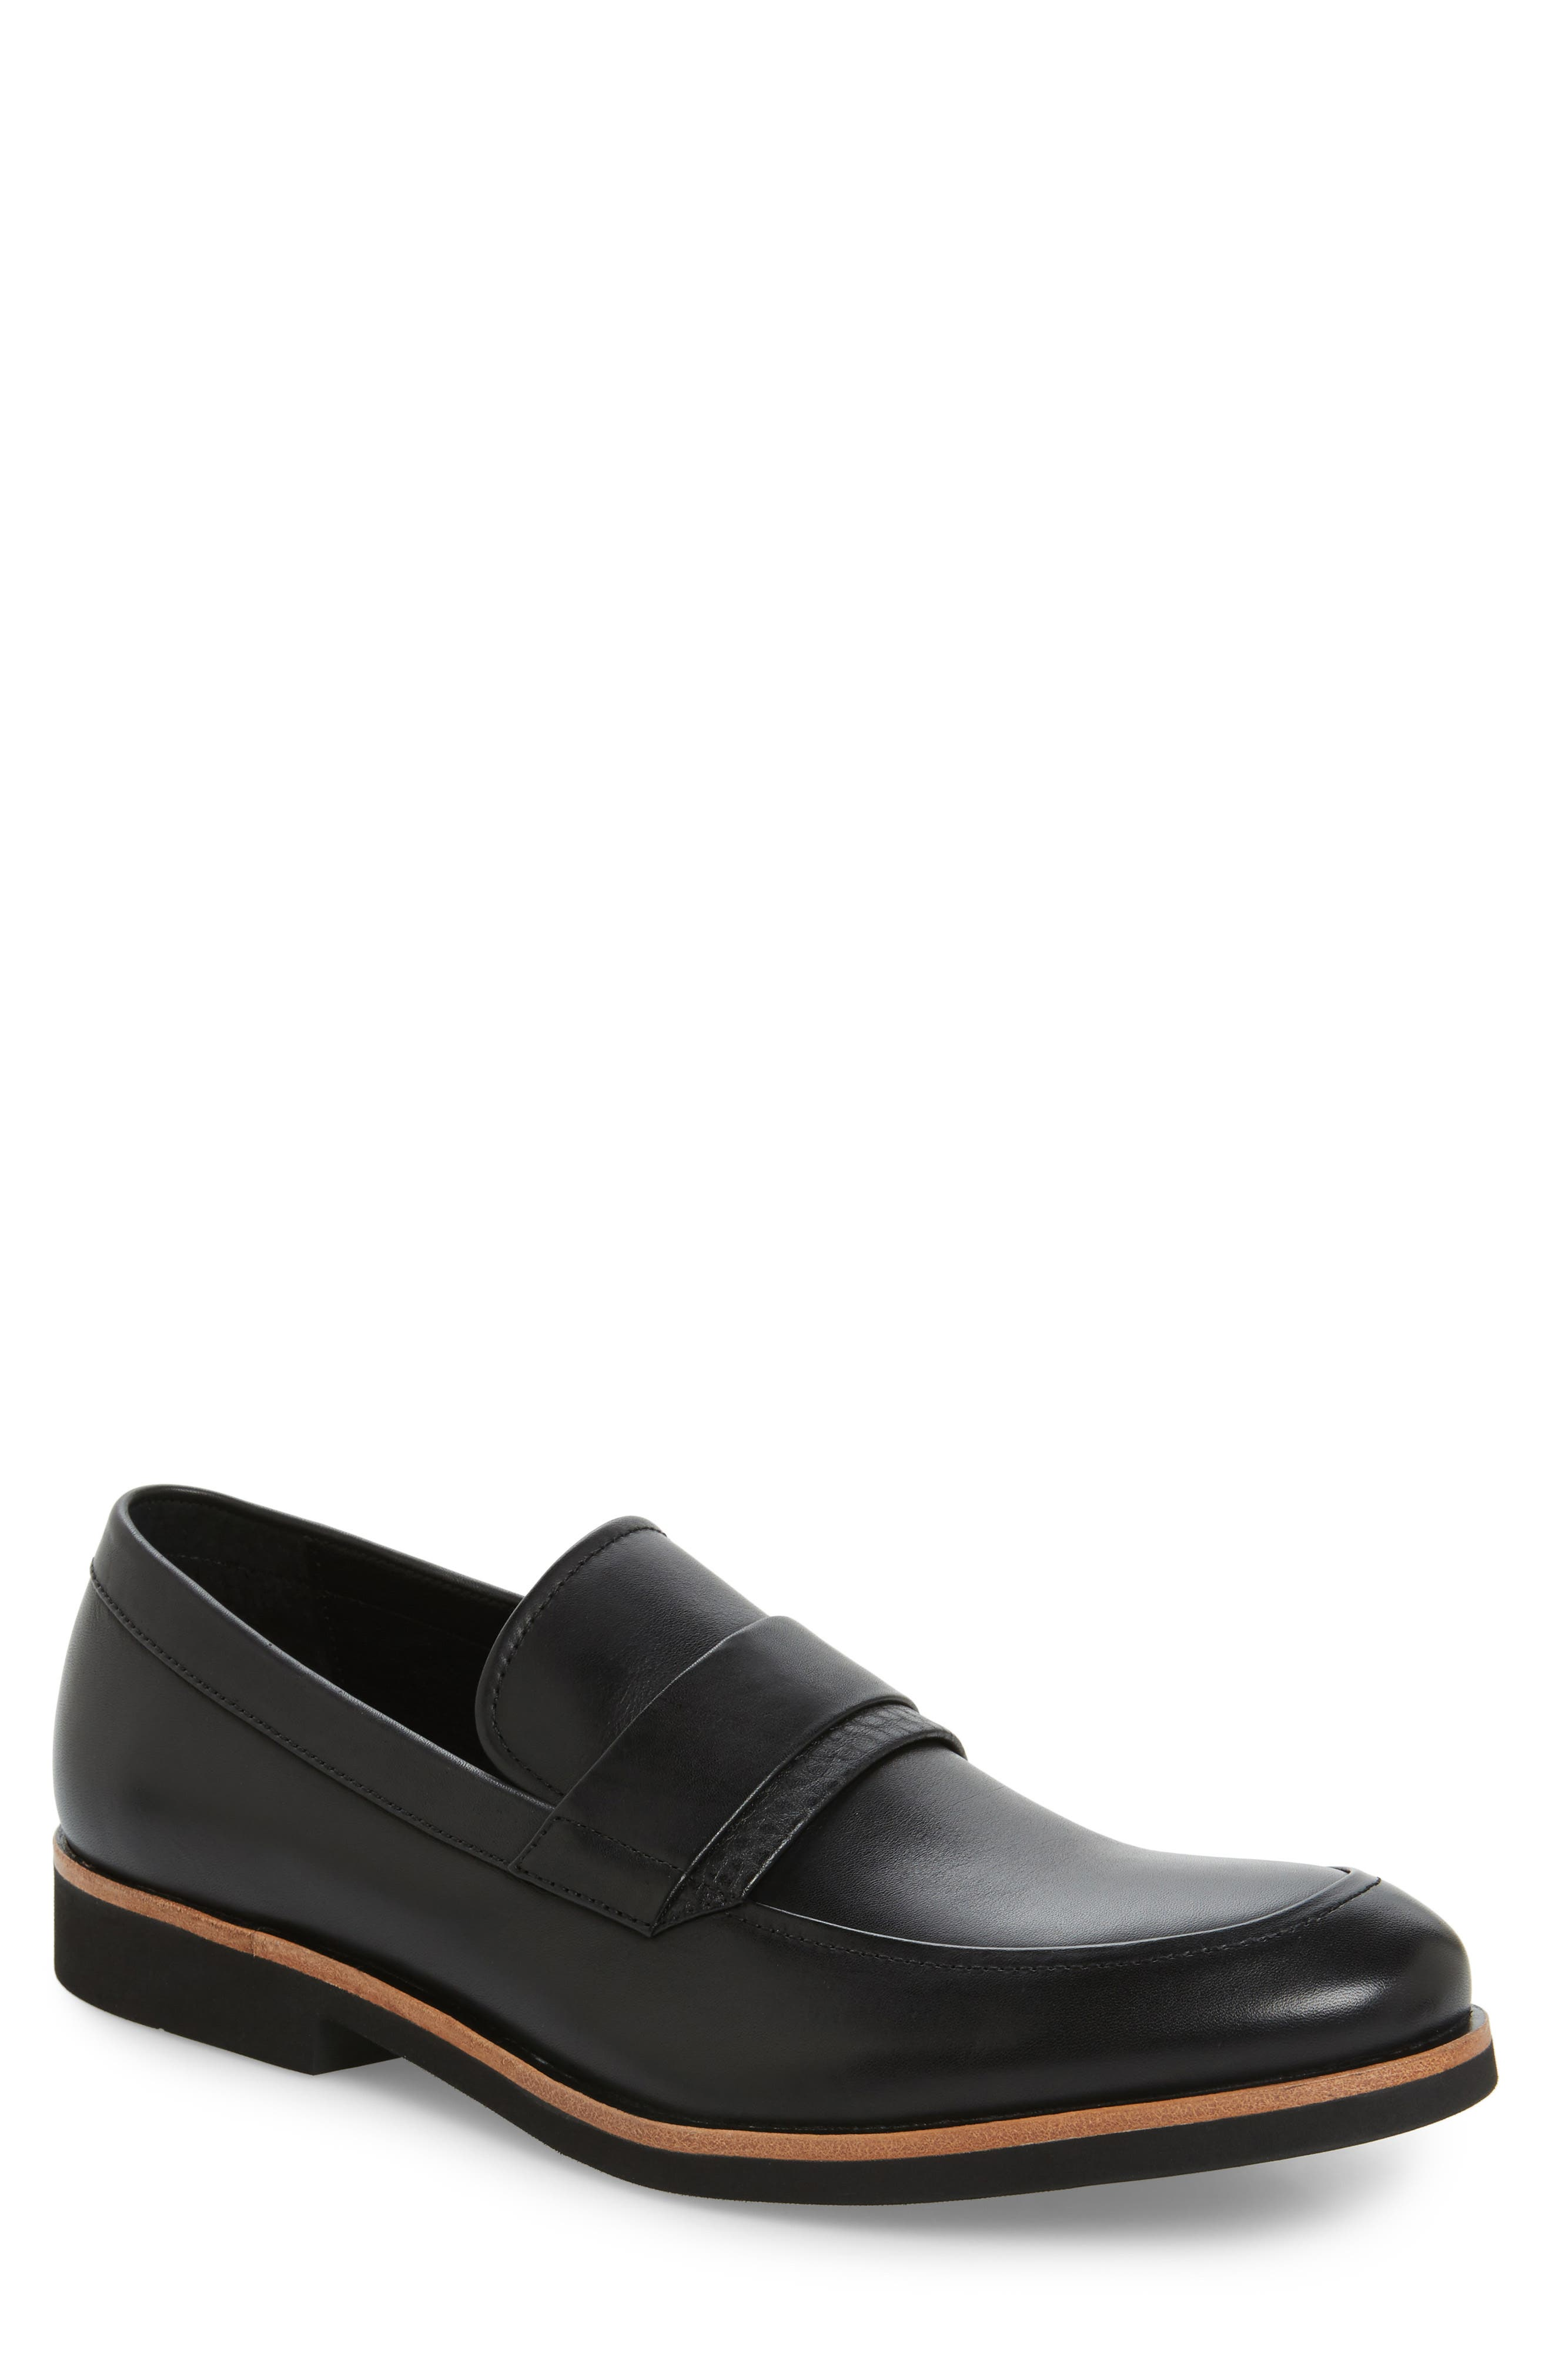 Forbes Loafer,                         Main,                         color, 001